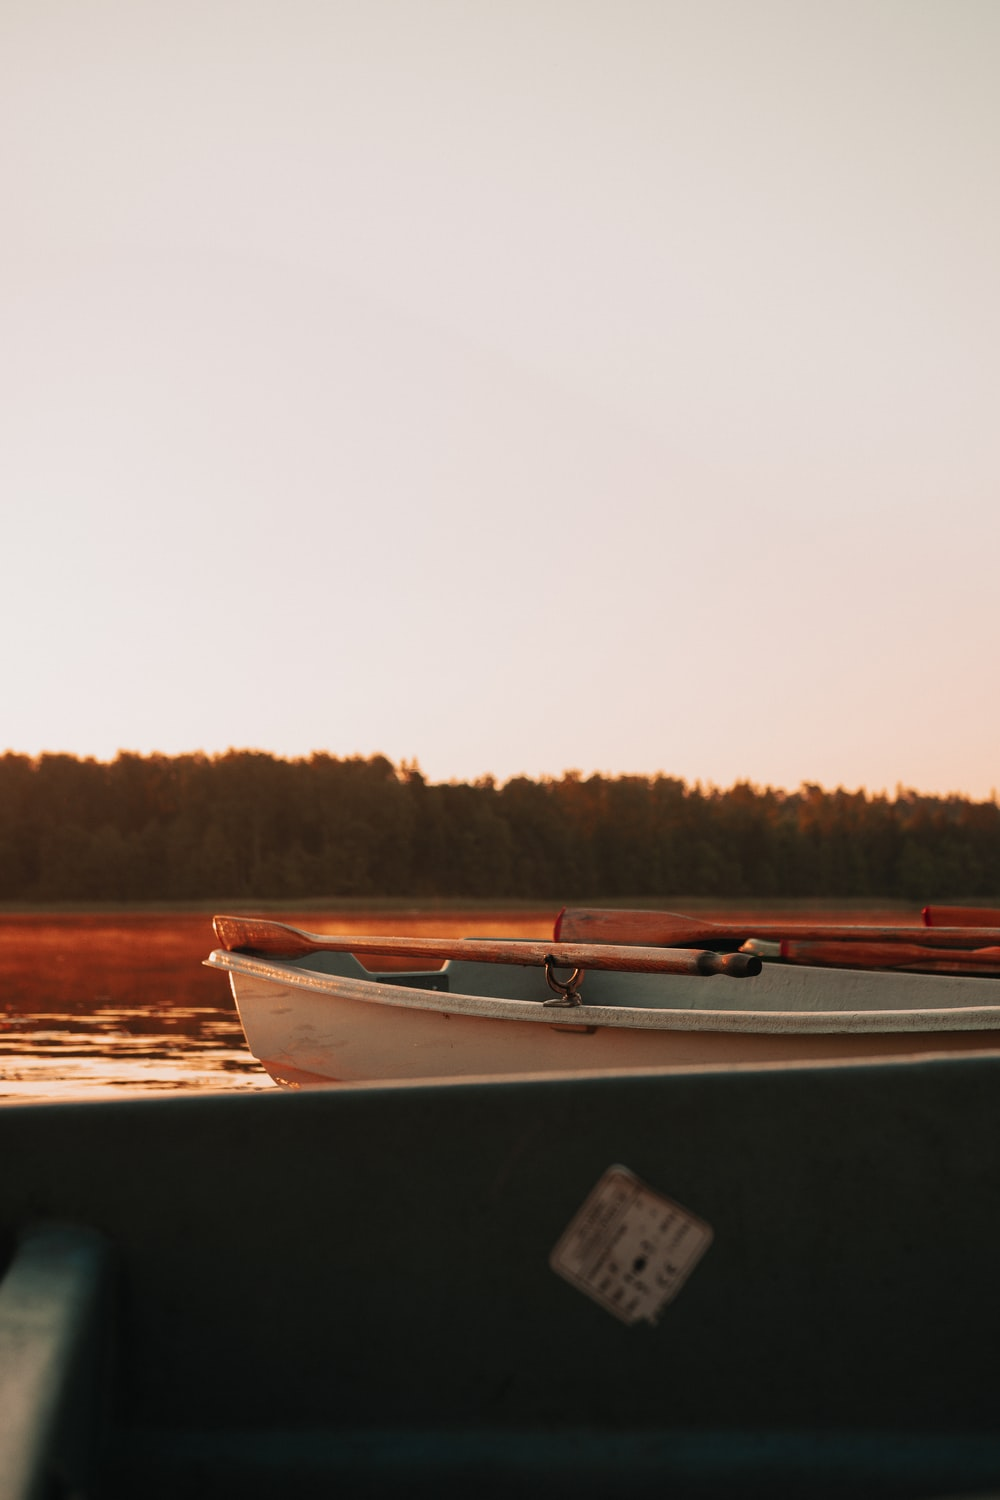 white and brown boat on water during daytime